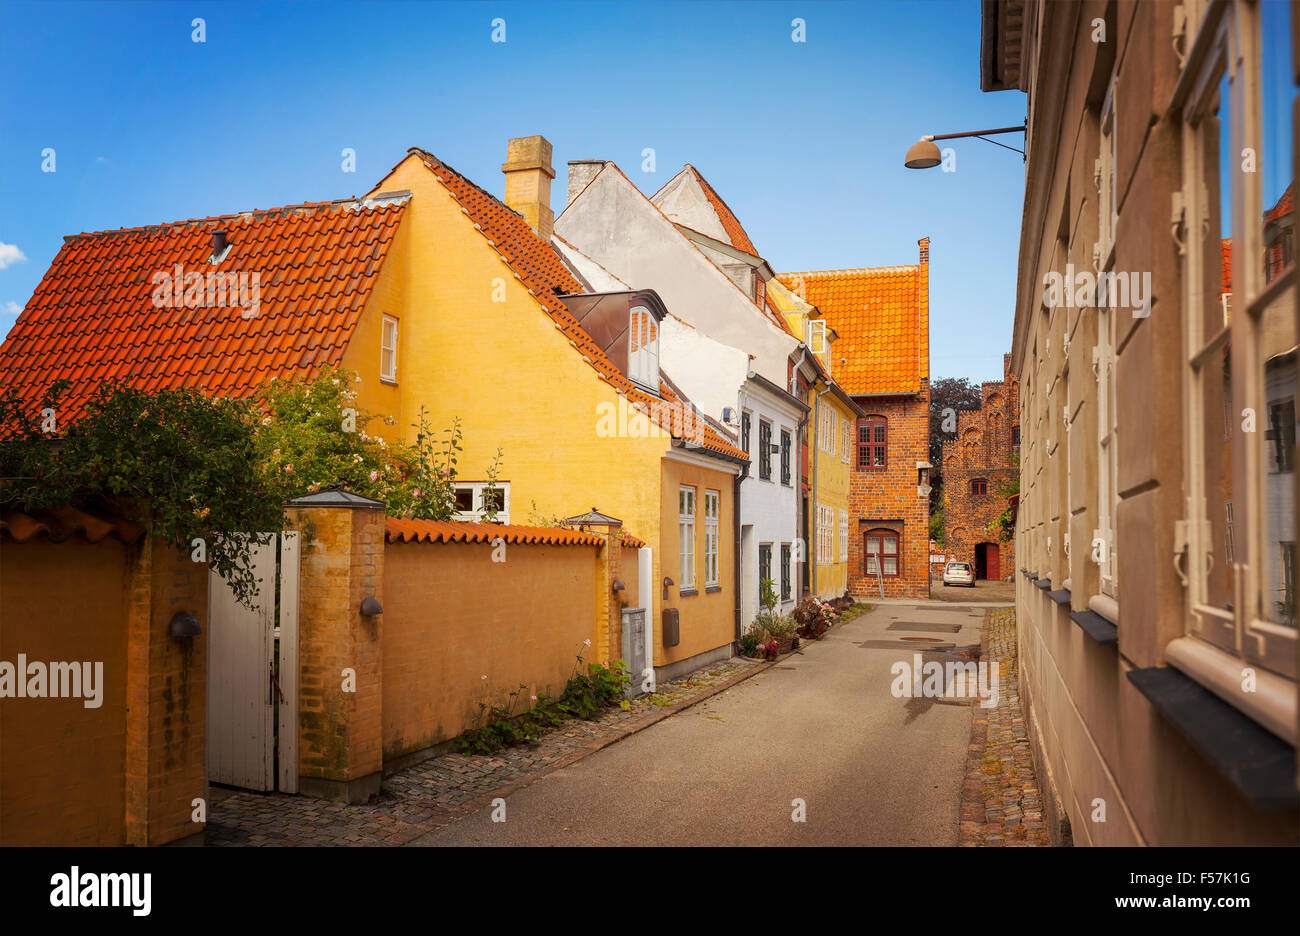 Image of a narrow residential street in the medieval town center of Helsingor, Denmark. - Stock Image